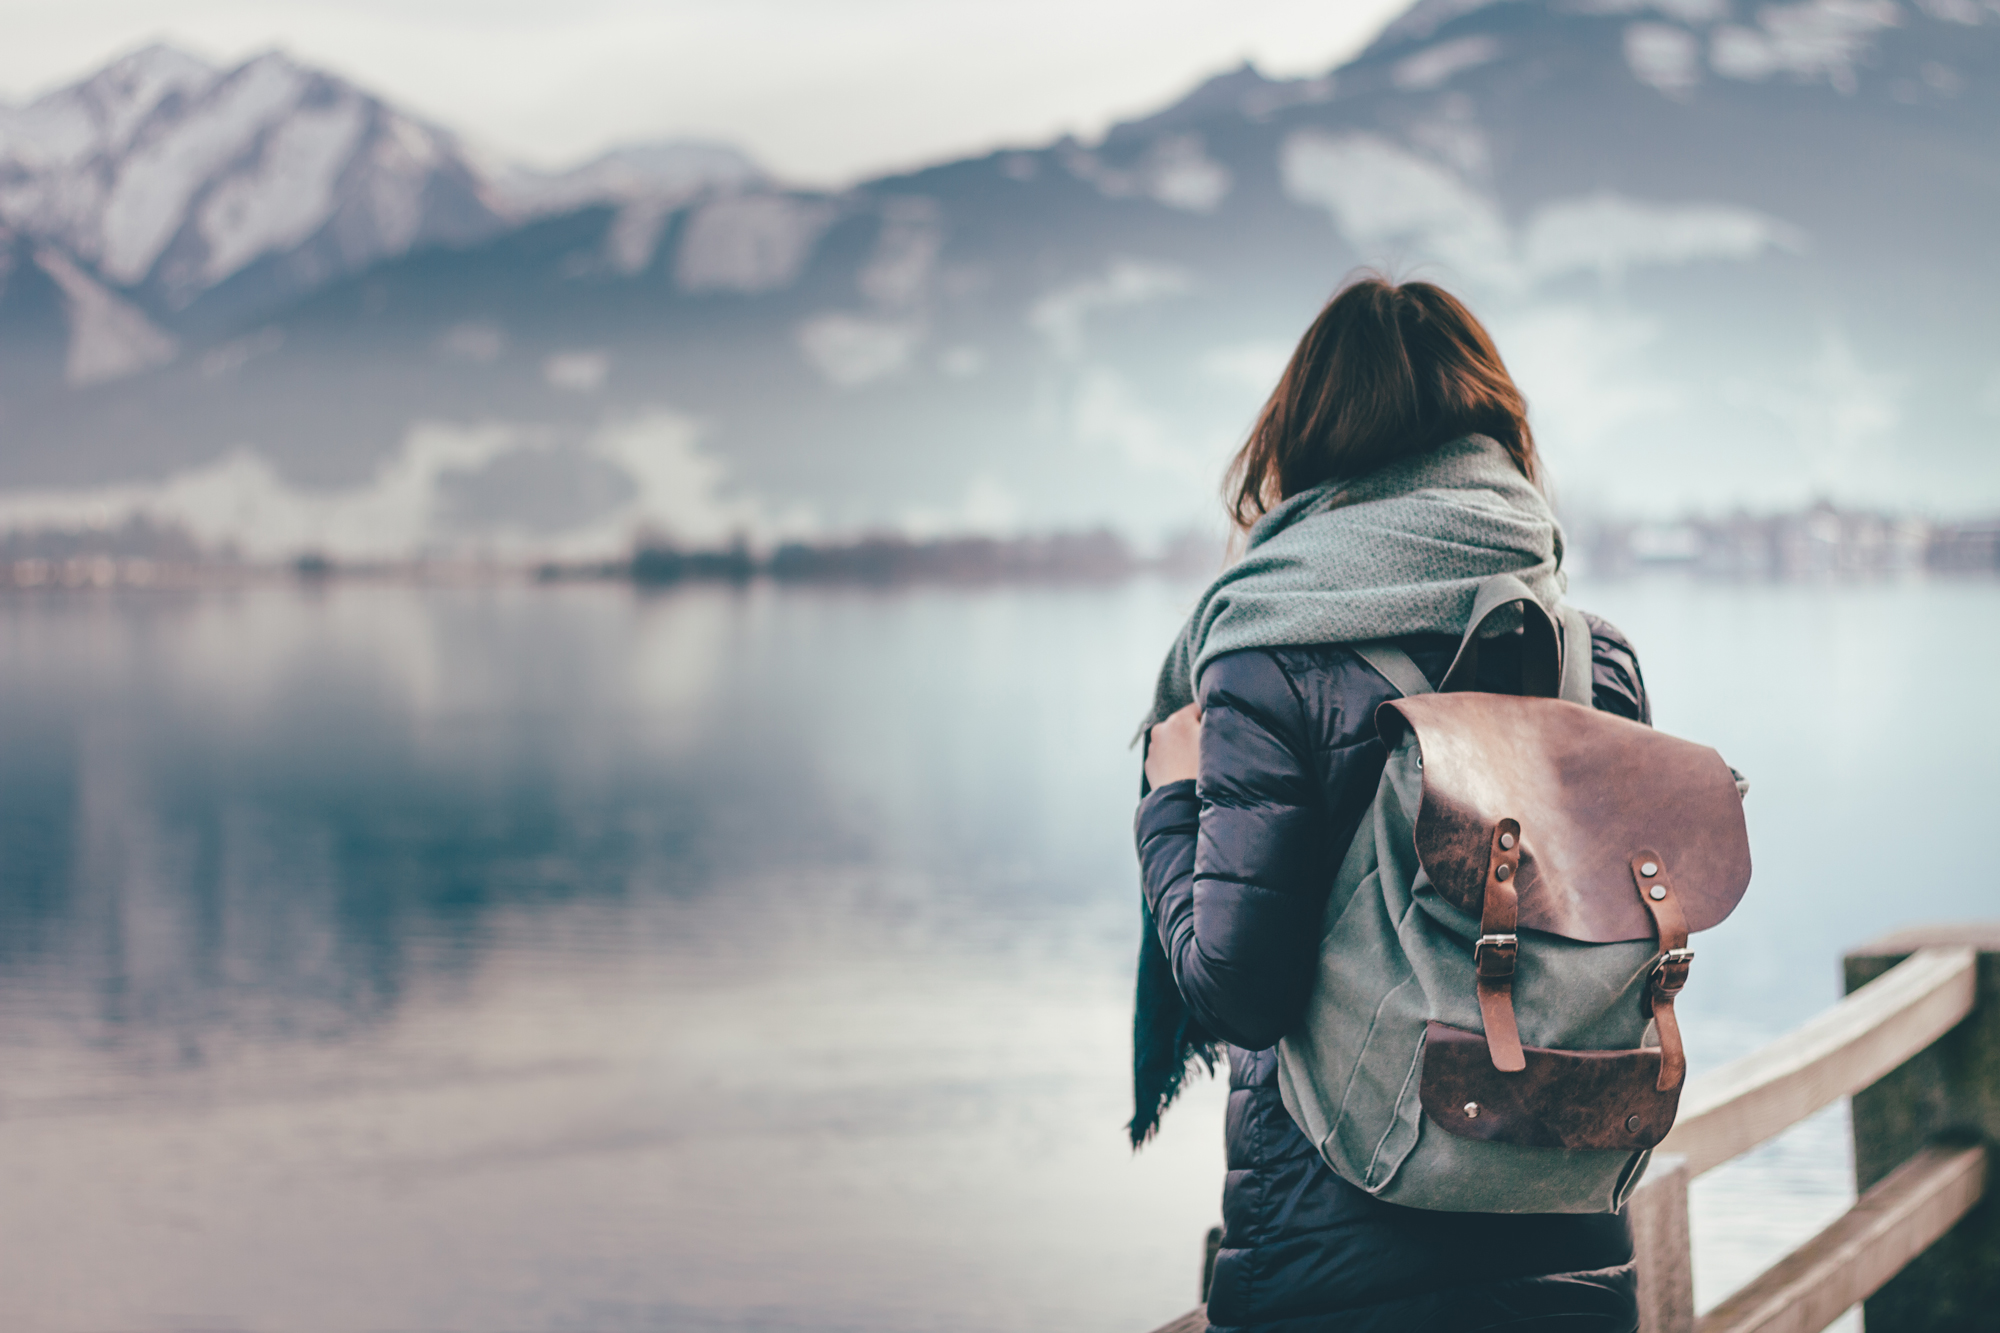 How I Plan to Keep Traveling After Losing My Job